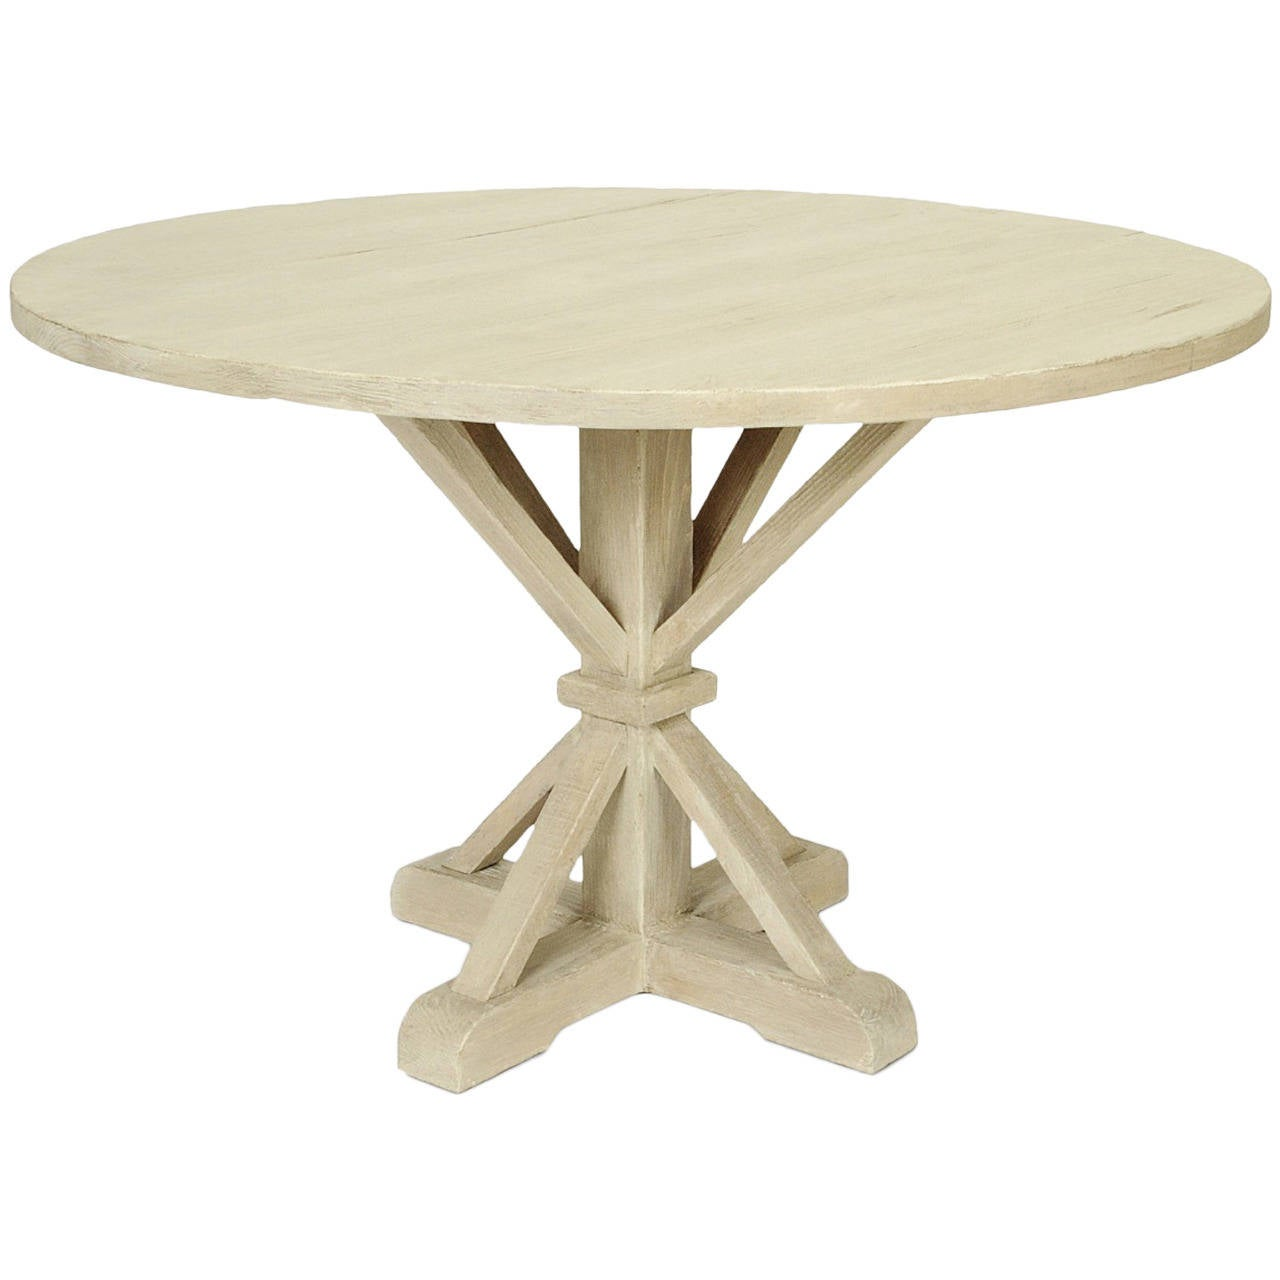 Dining table available in multiple finish and size for Table options